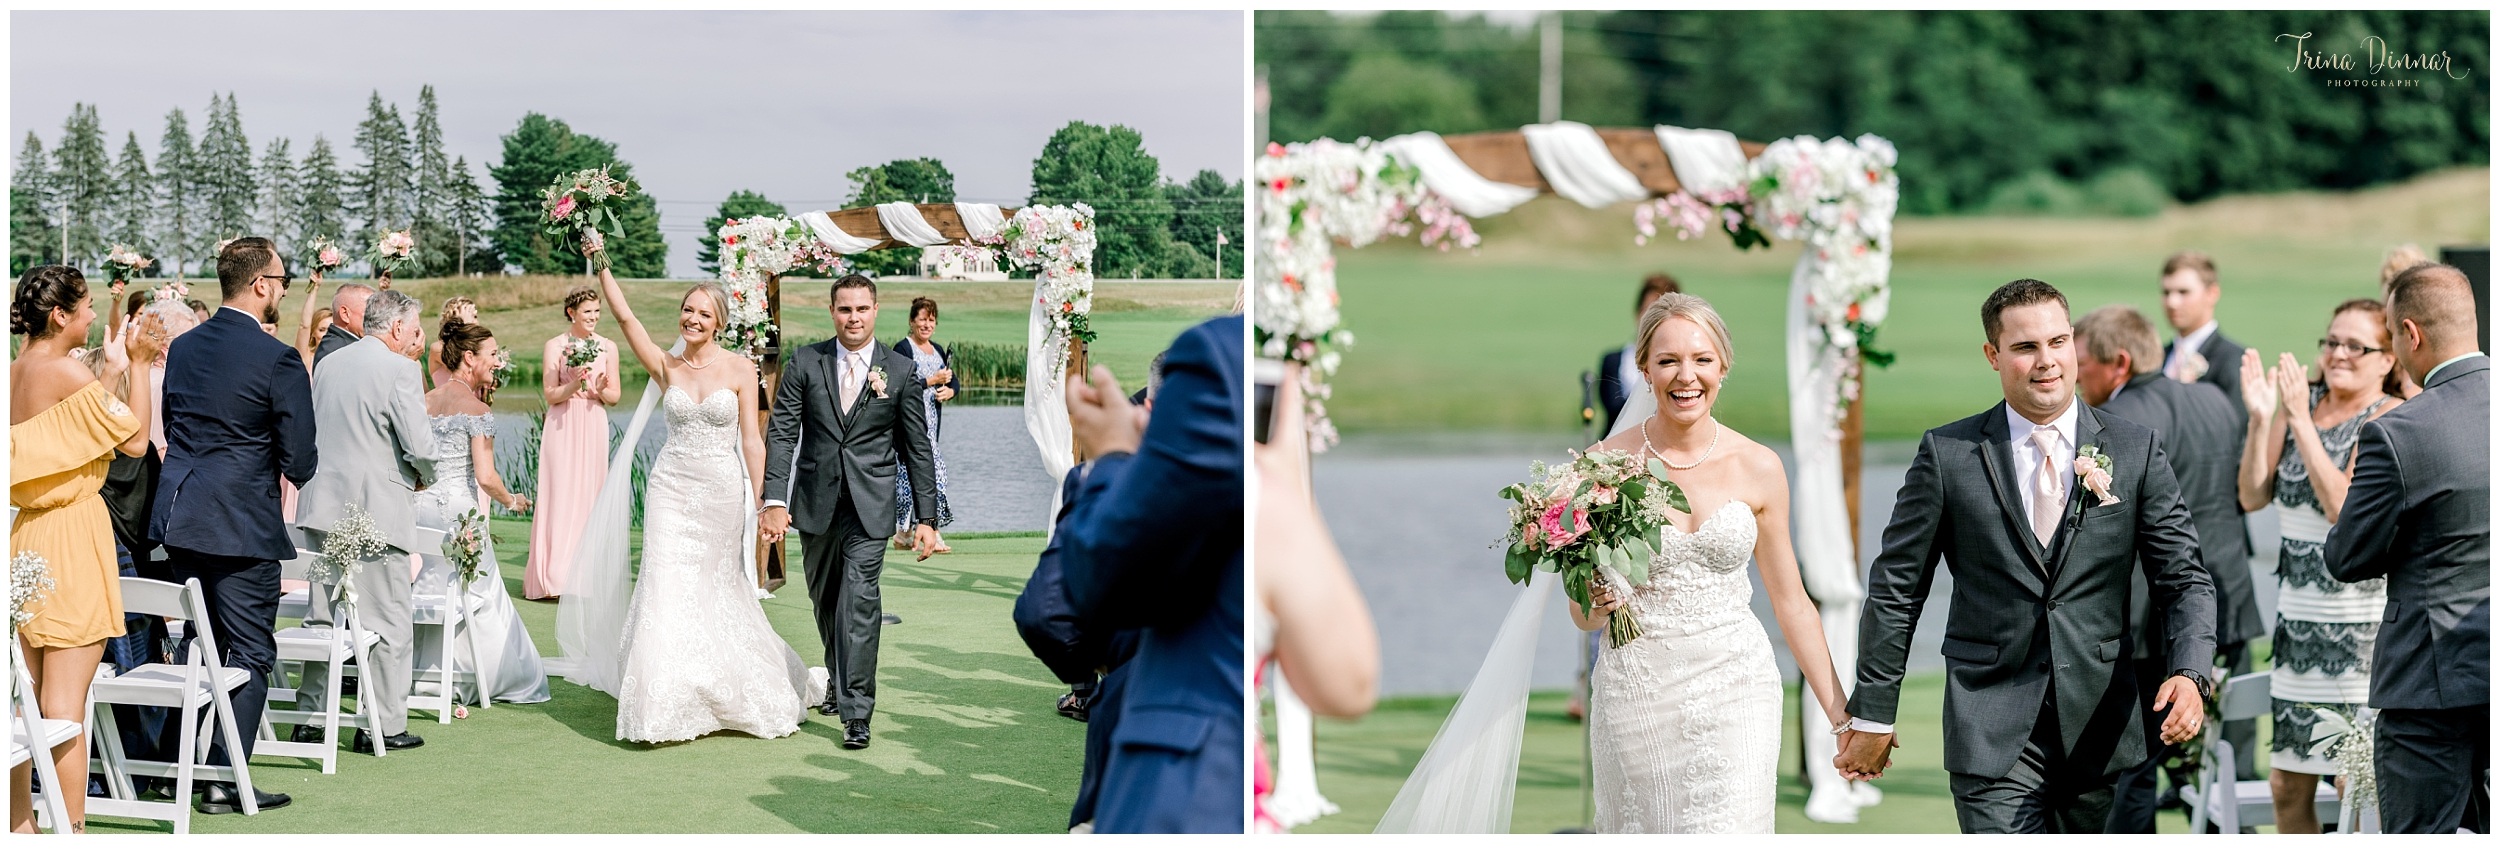 Capture the Moment. Wedding Hashtags: #JFrey5plus1 #FreyDo #Herecomethefreys